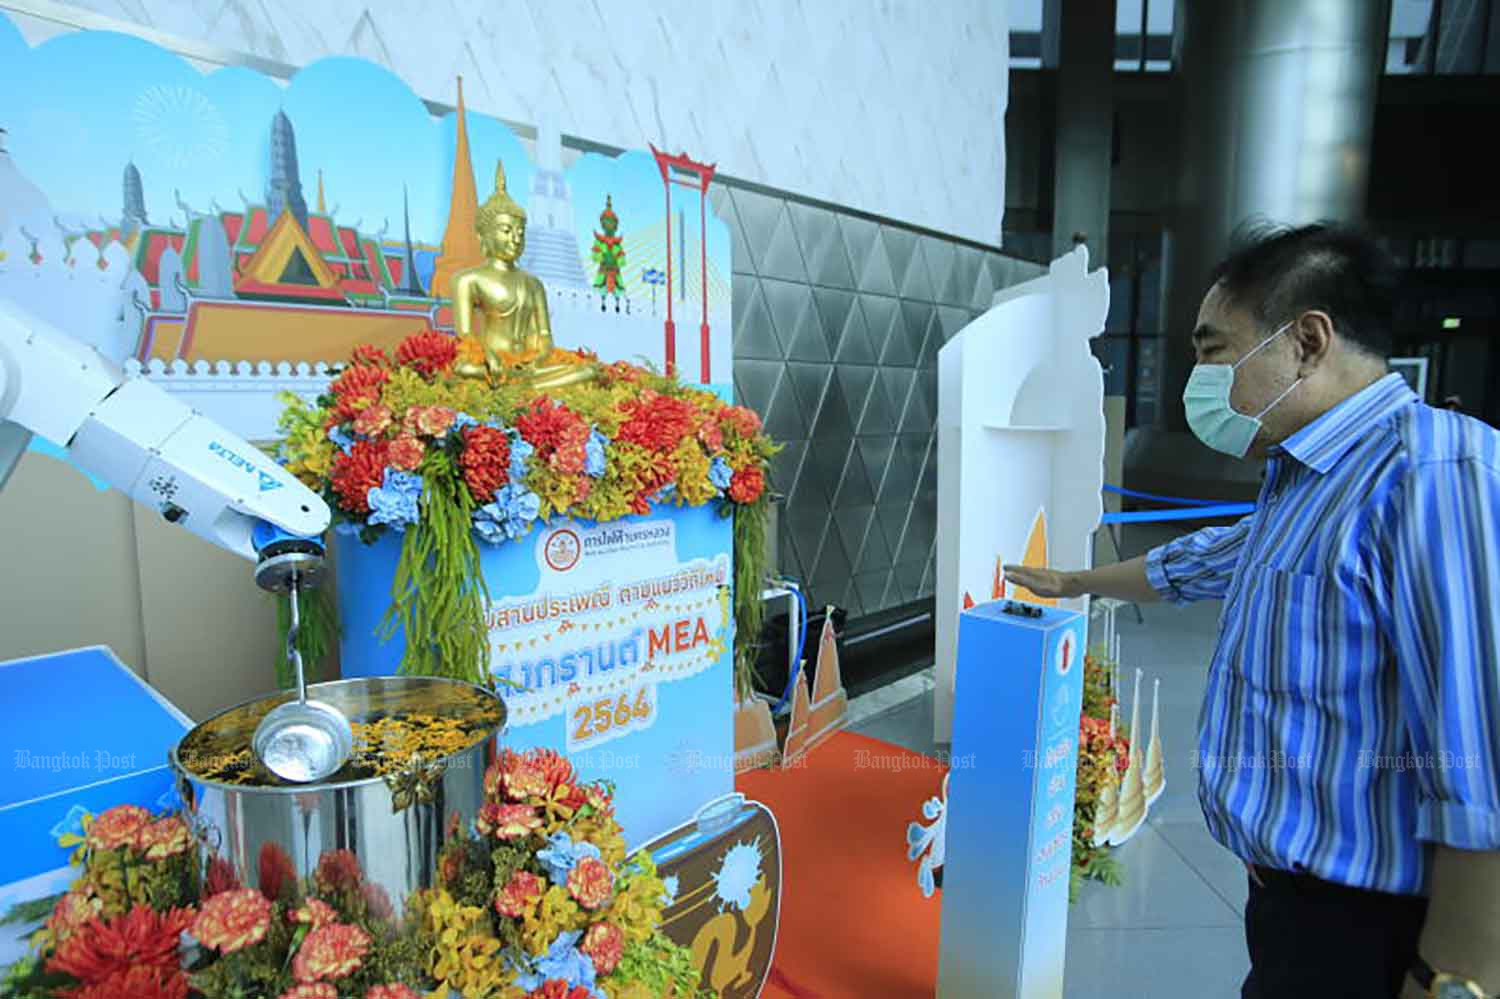 A man bathes a Buddha image using a robotic arm, to help limit the spread of Covid-19, at the Metropolitan Electricity Authority building in Klong Toey district, Bangkok, on Thursday, when the country logged 559 new cases. (Photo: Pornprom Satrabhaya)